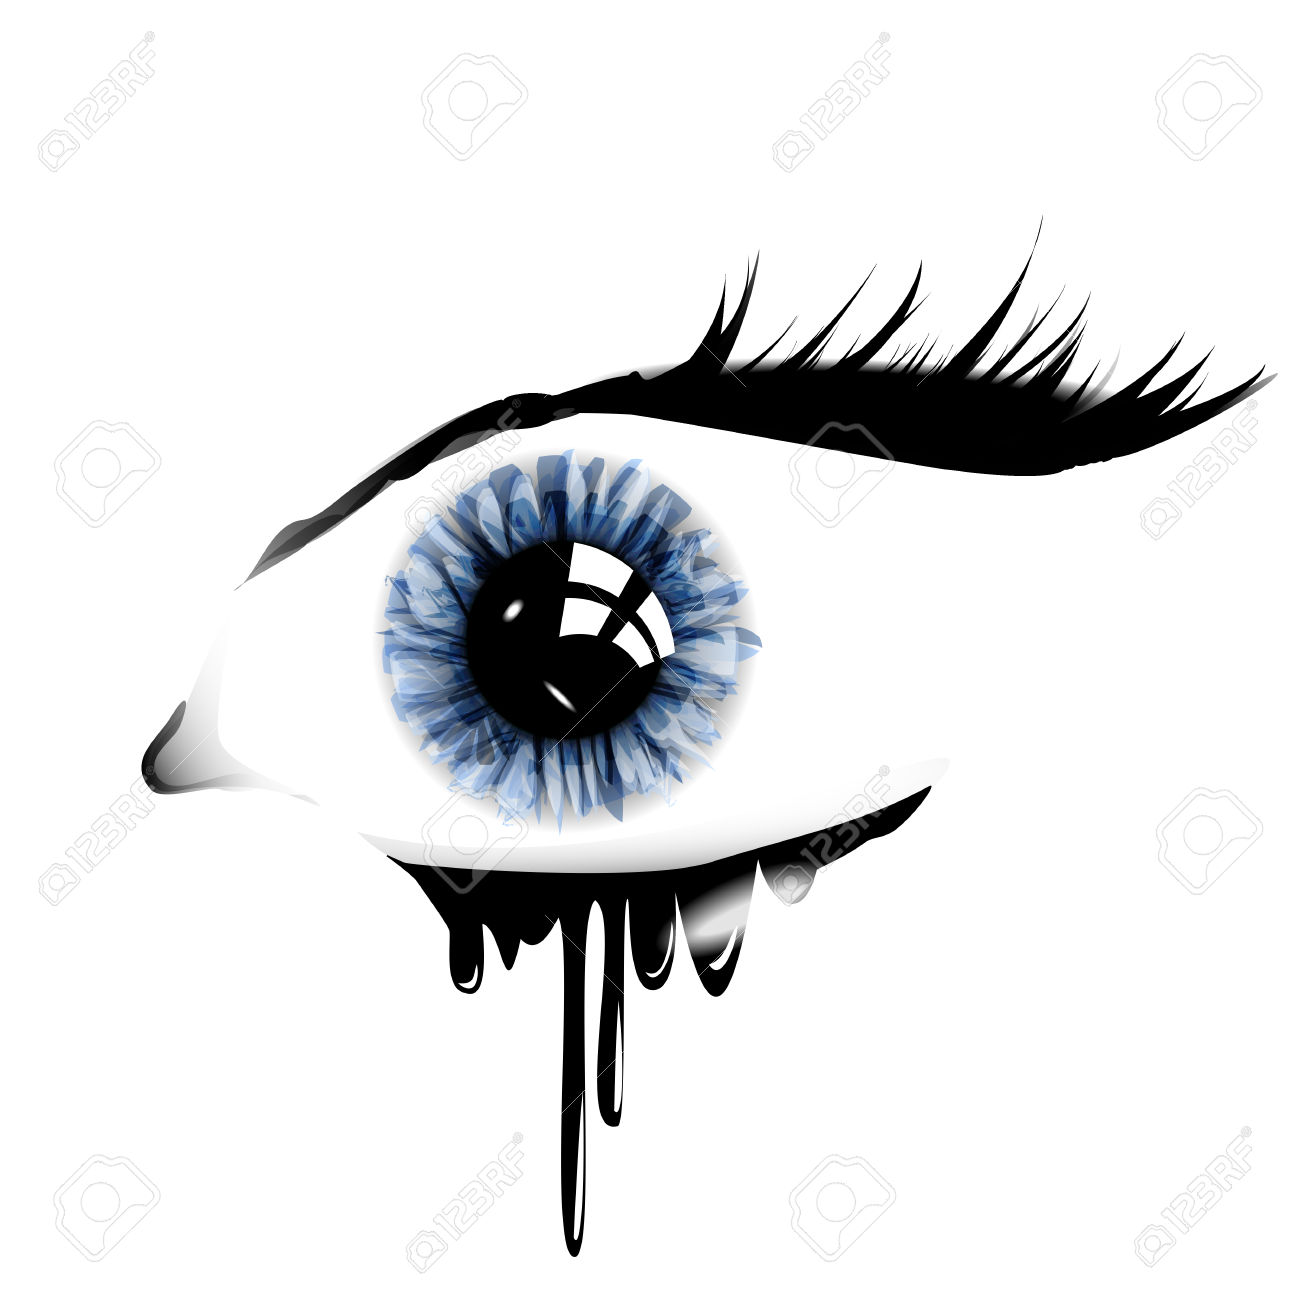 sad eyes clipart free download best sad eyes clipart on clipartmag com